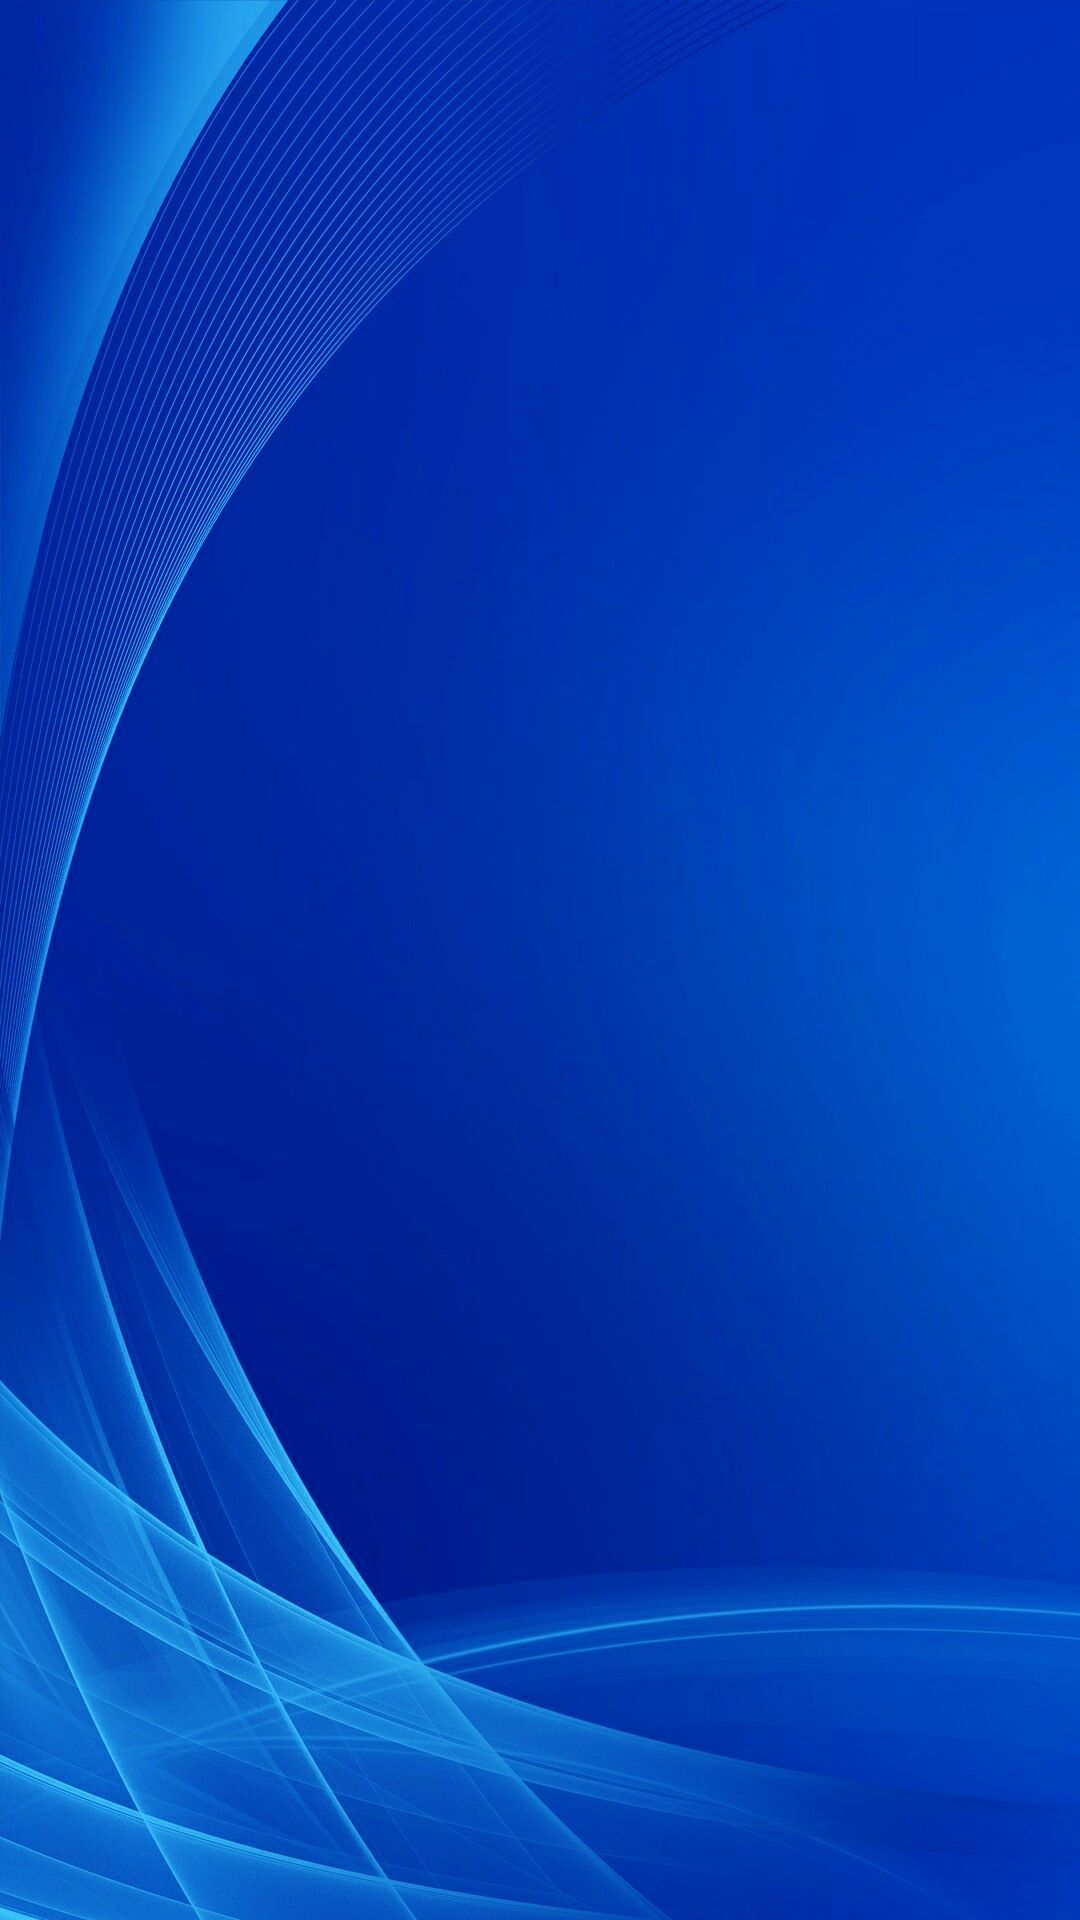 Get Cool Blue Background For Android Phone Today Blue Wallpaper Iphone Blue Background Wallpapers Xperia Wallpaper